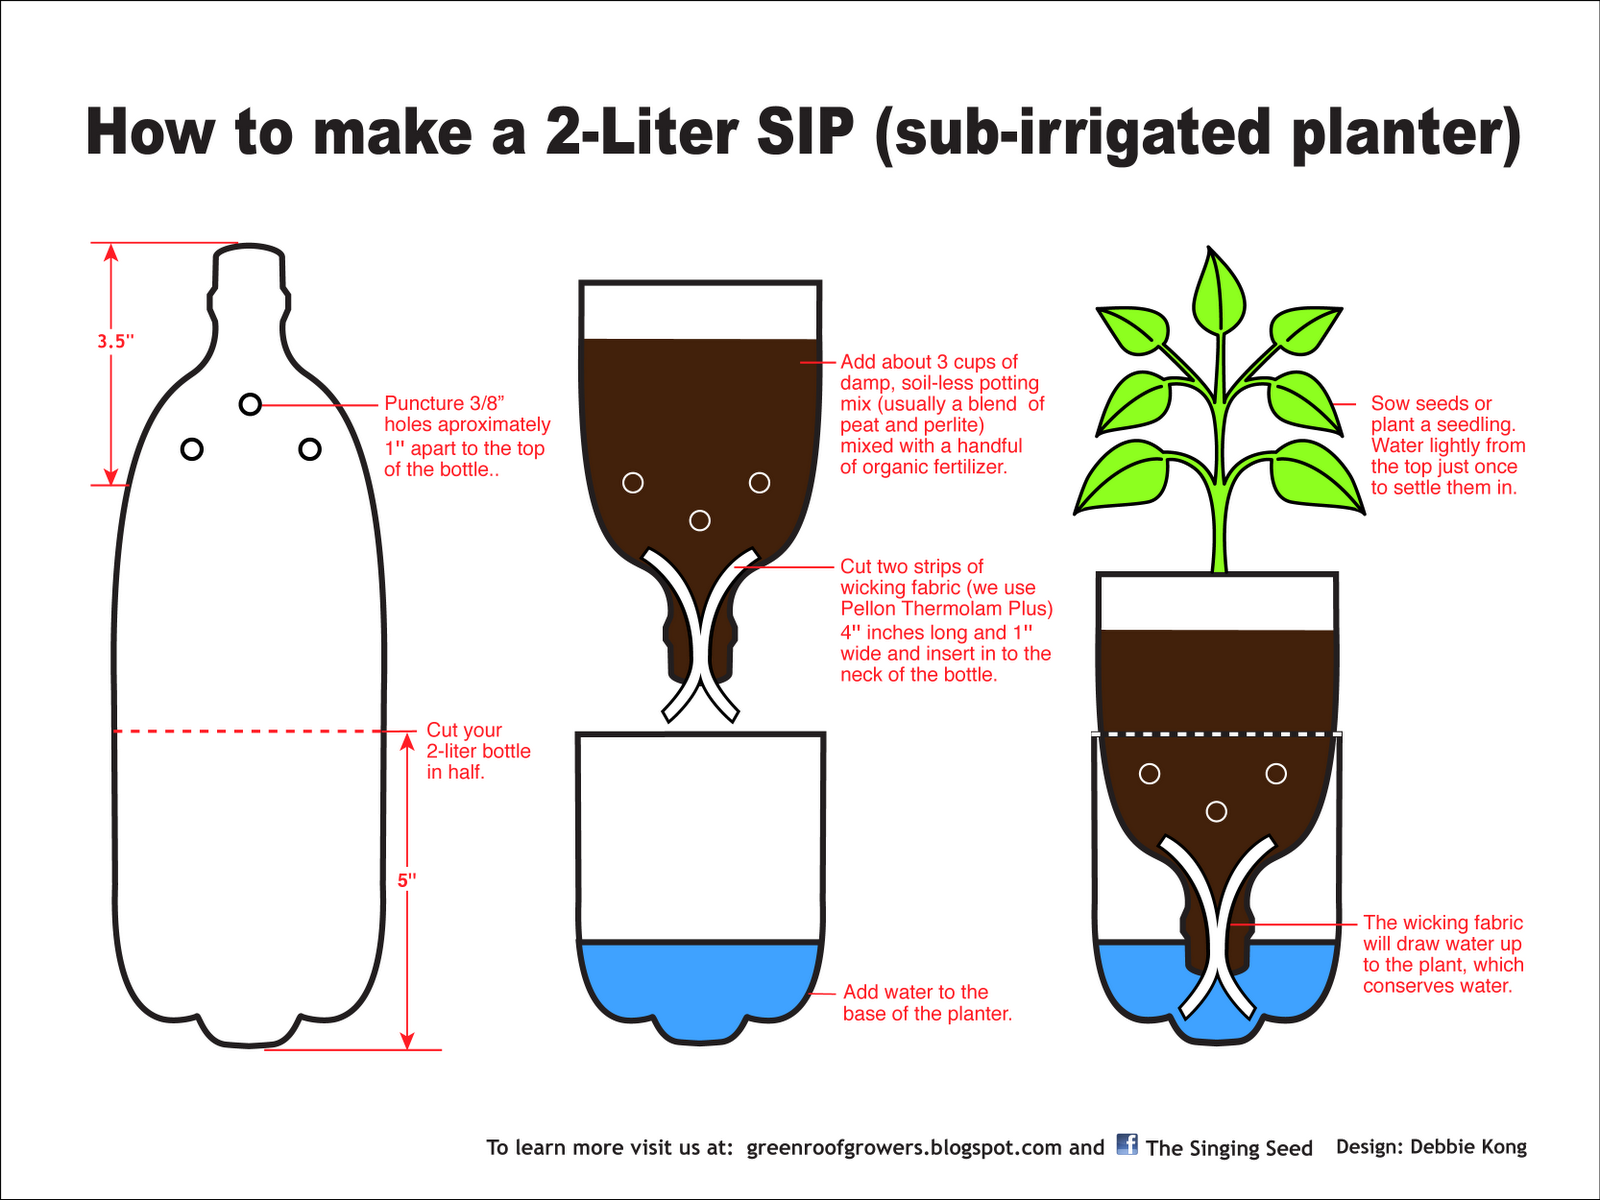 Green roof growers let s make 2 liter sips for How to build with sips